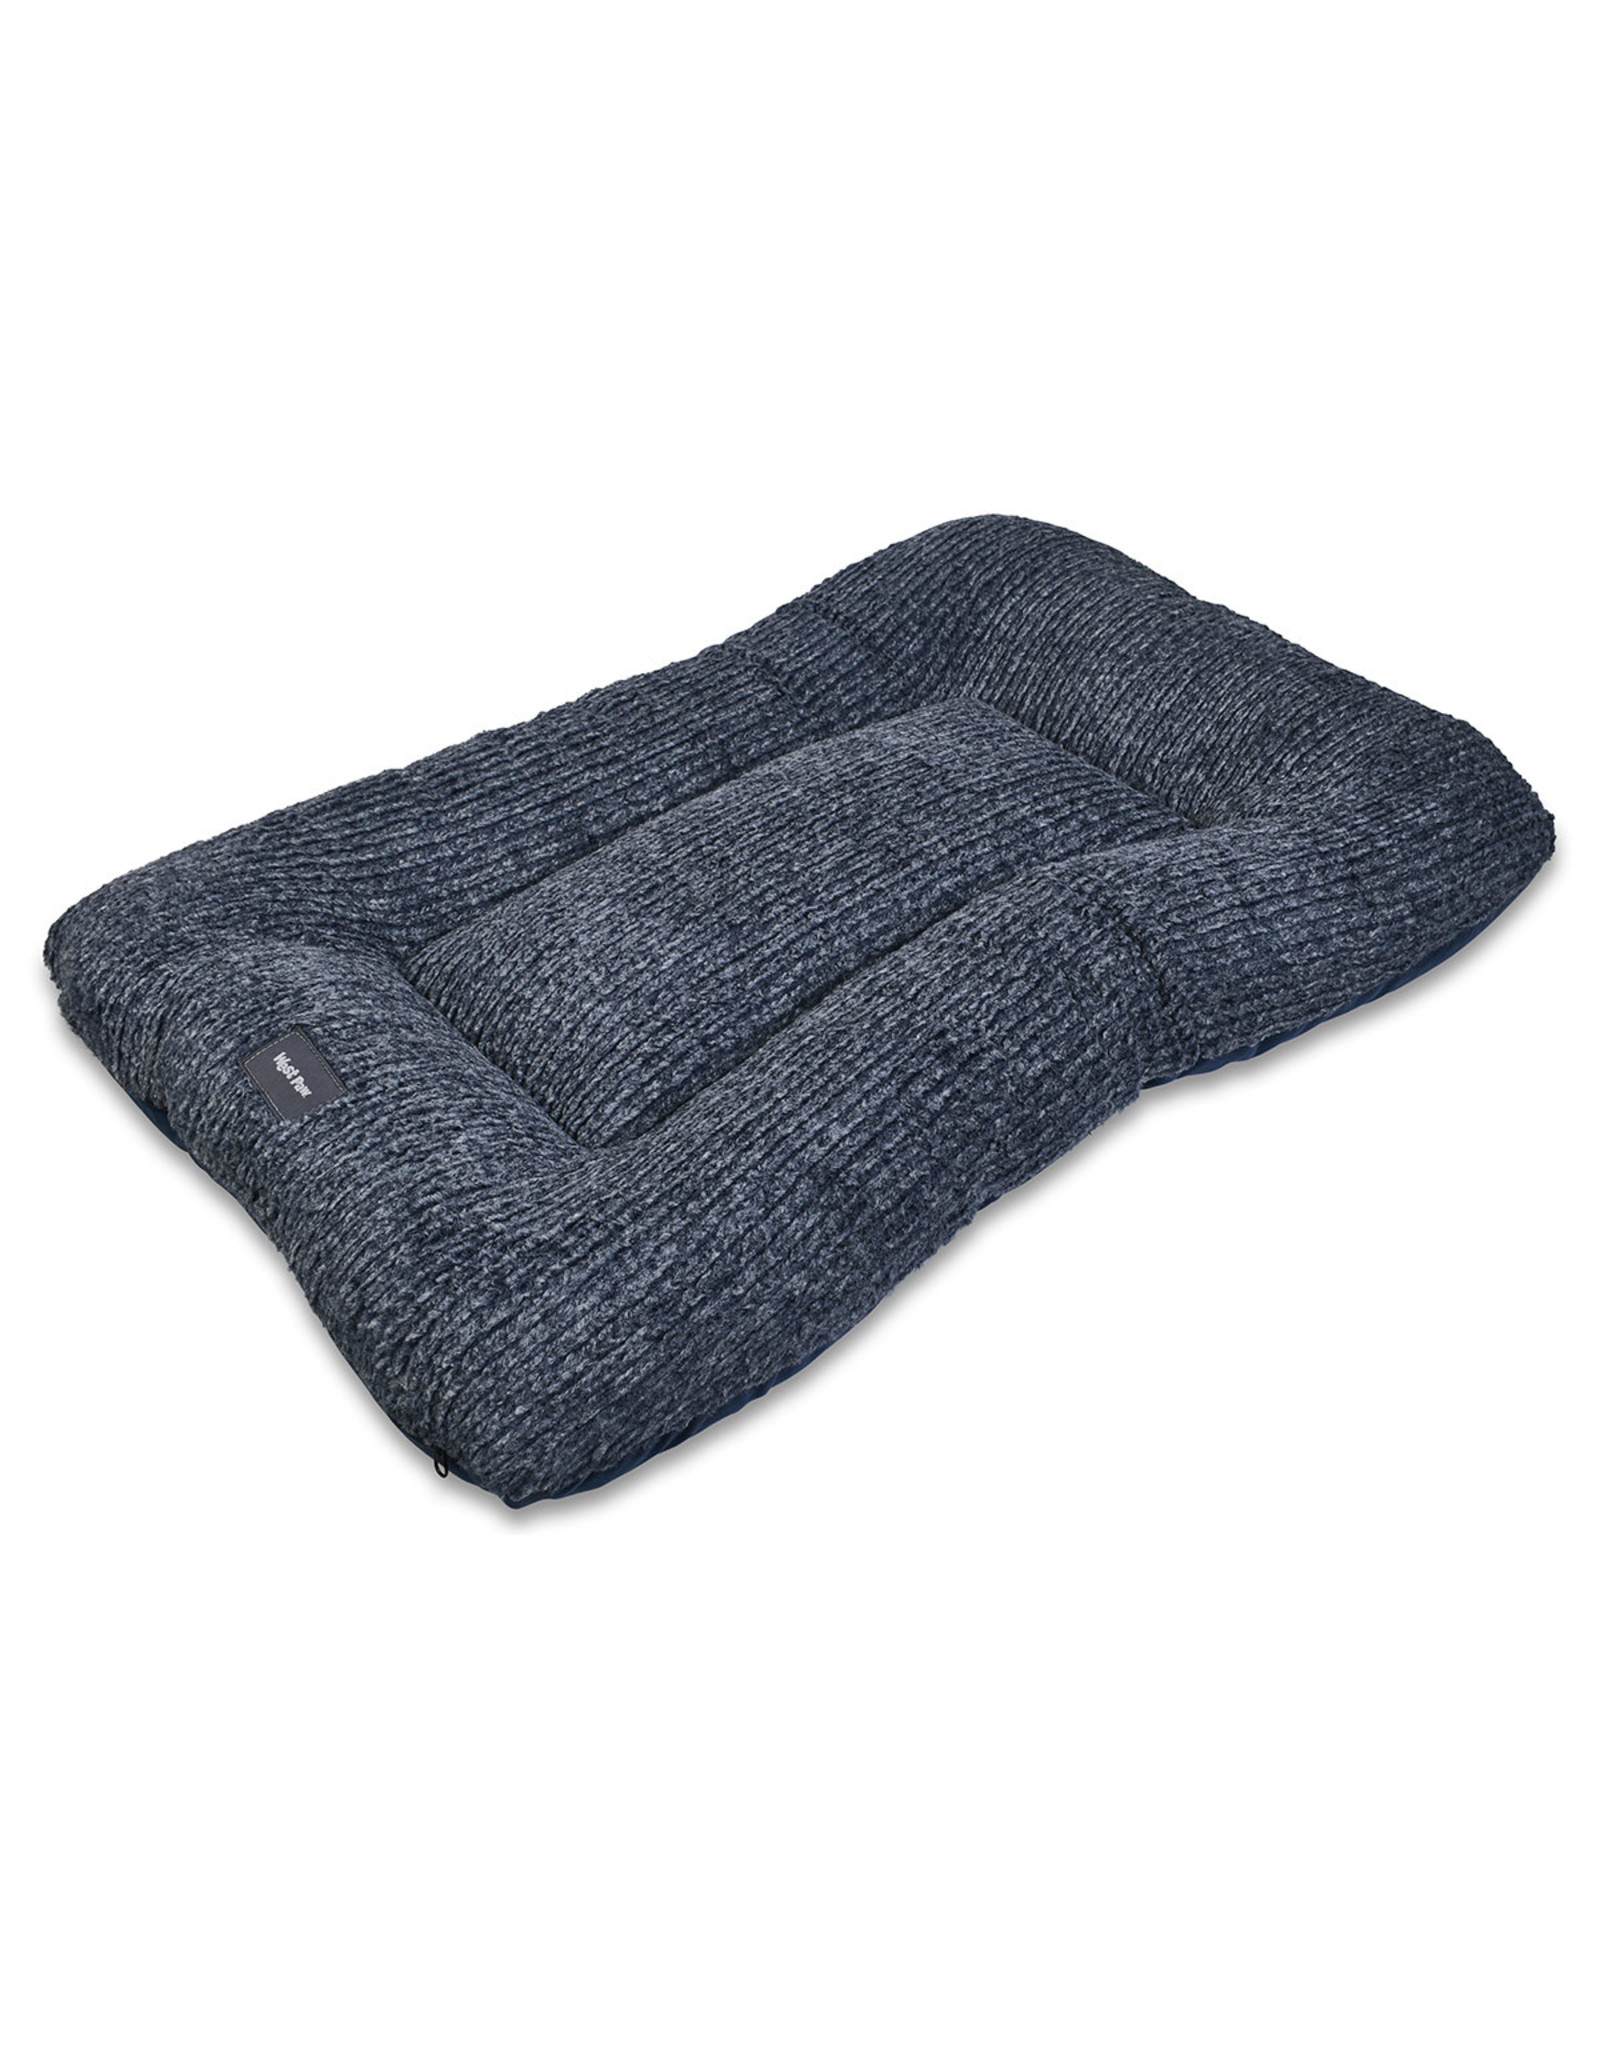 West Paw Designs Westpaw: Heyday Bed® - XL 46x32 Midnight Heather